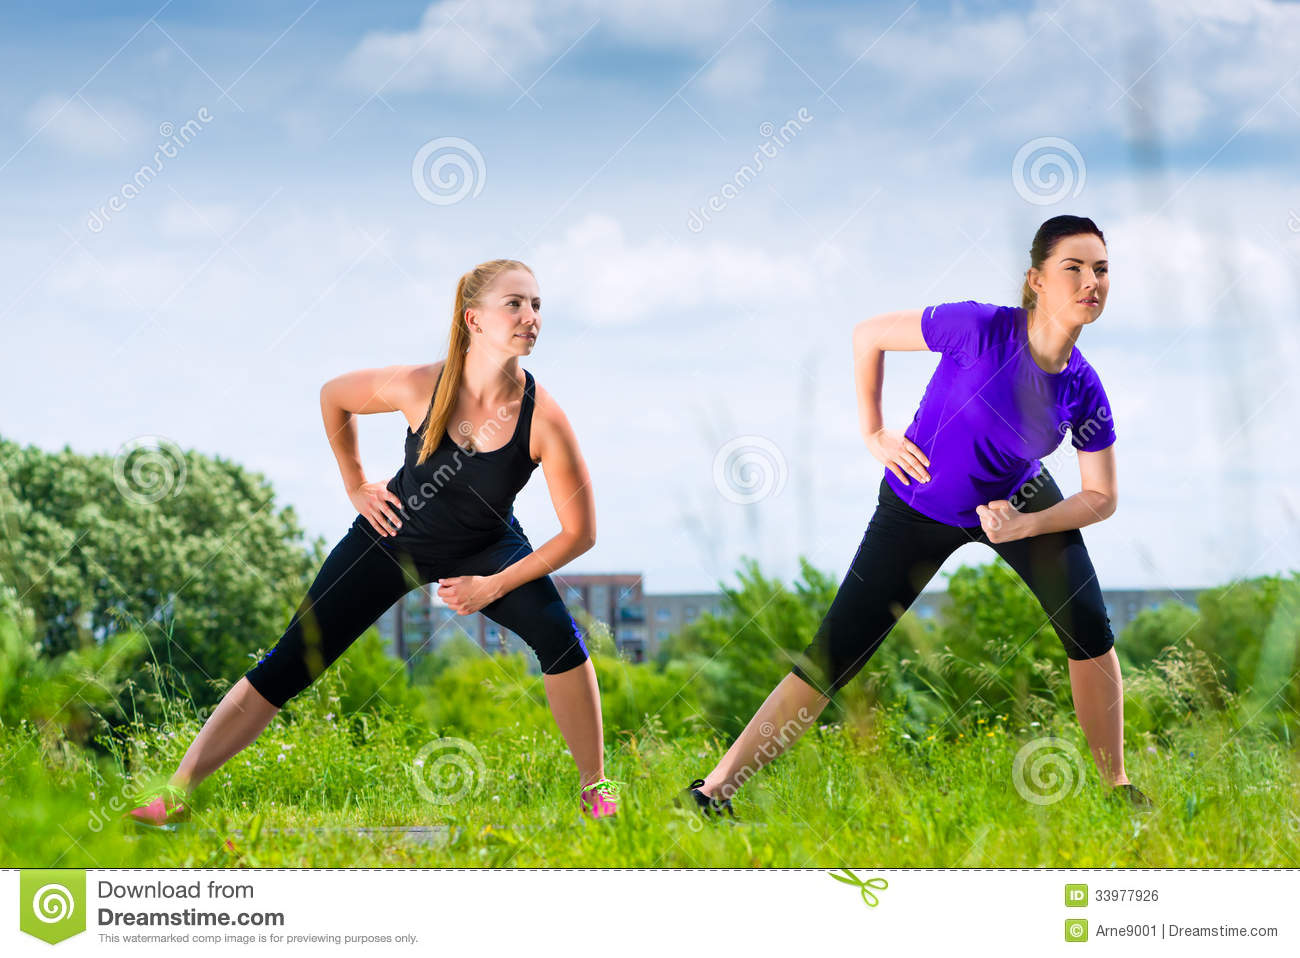 sports outdoor young doing fitness summer park running together warming exercise greenfield urban before confidence preview